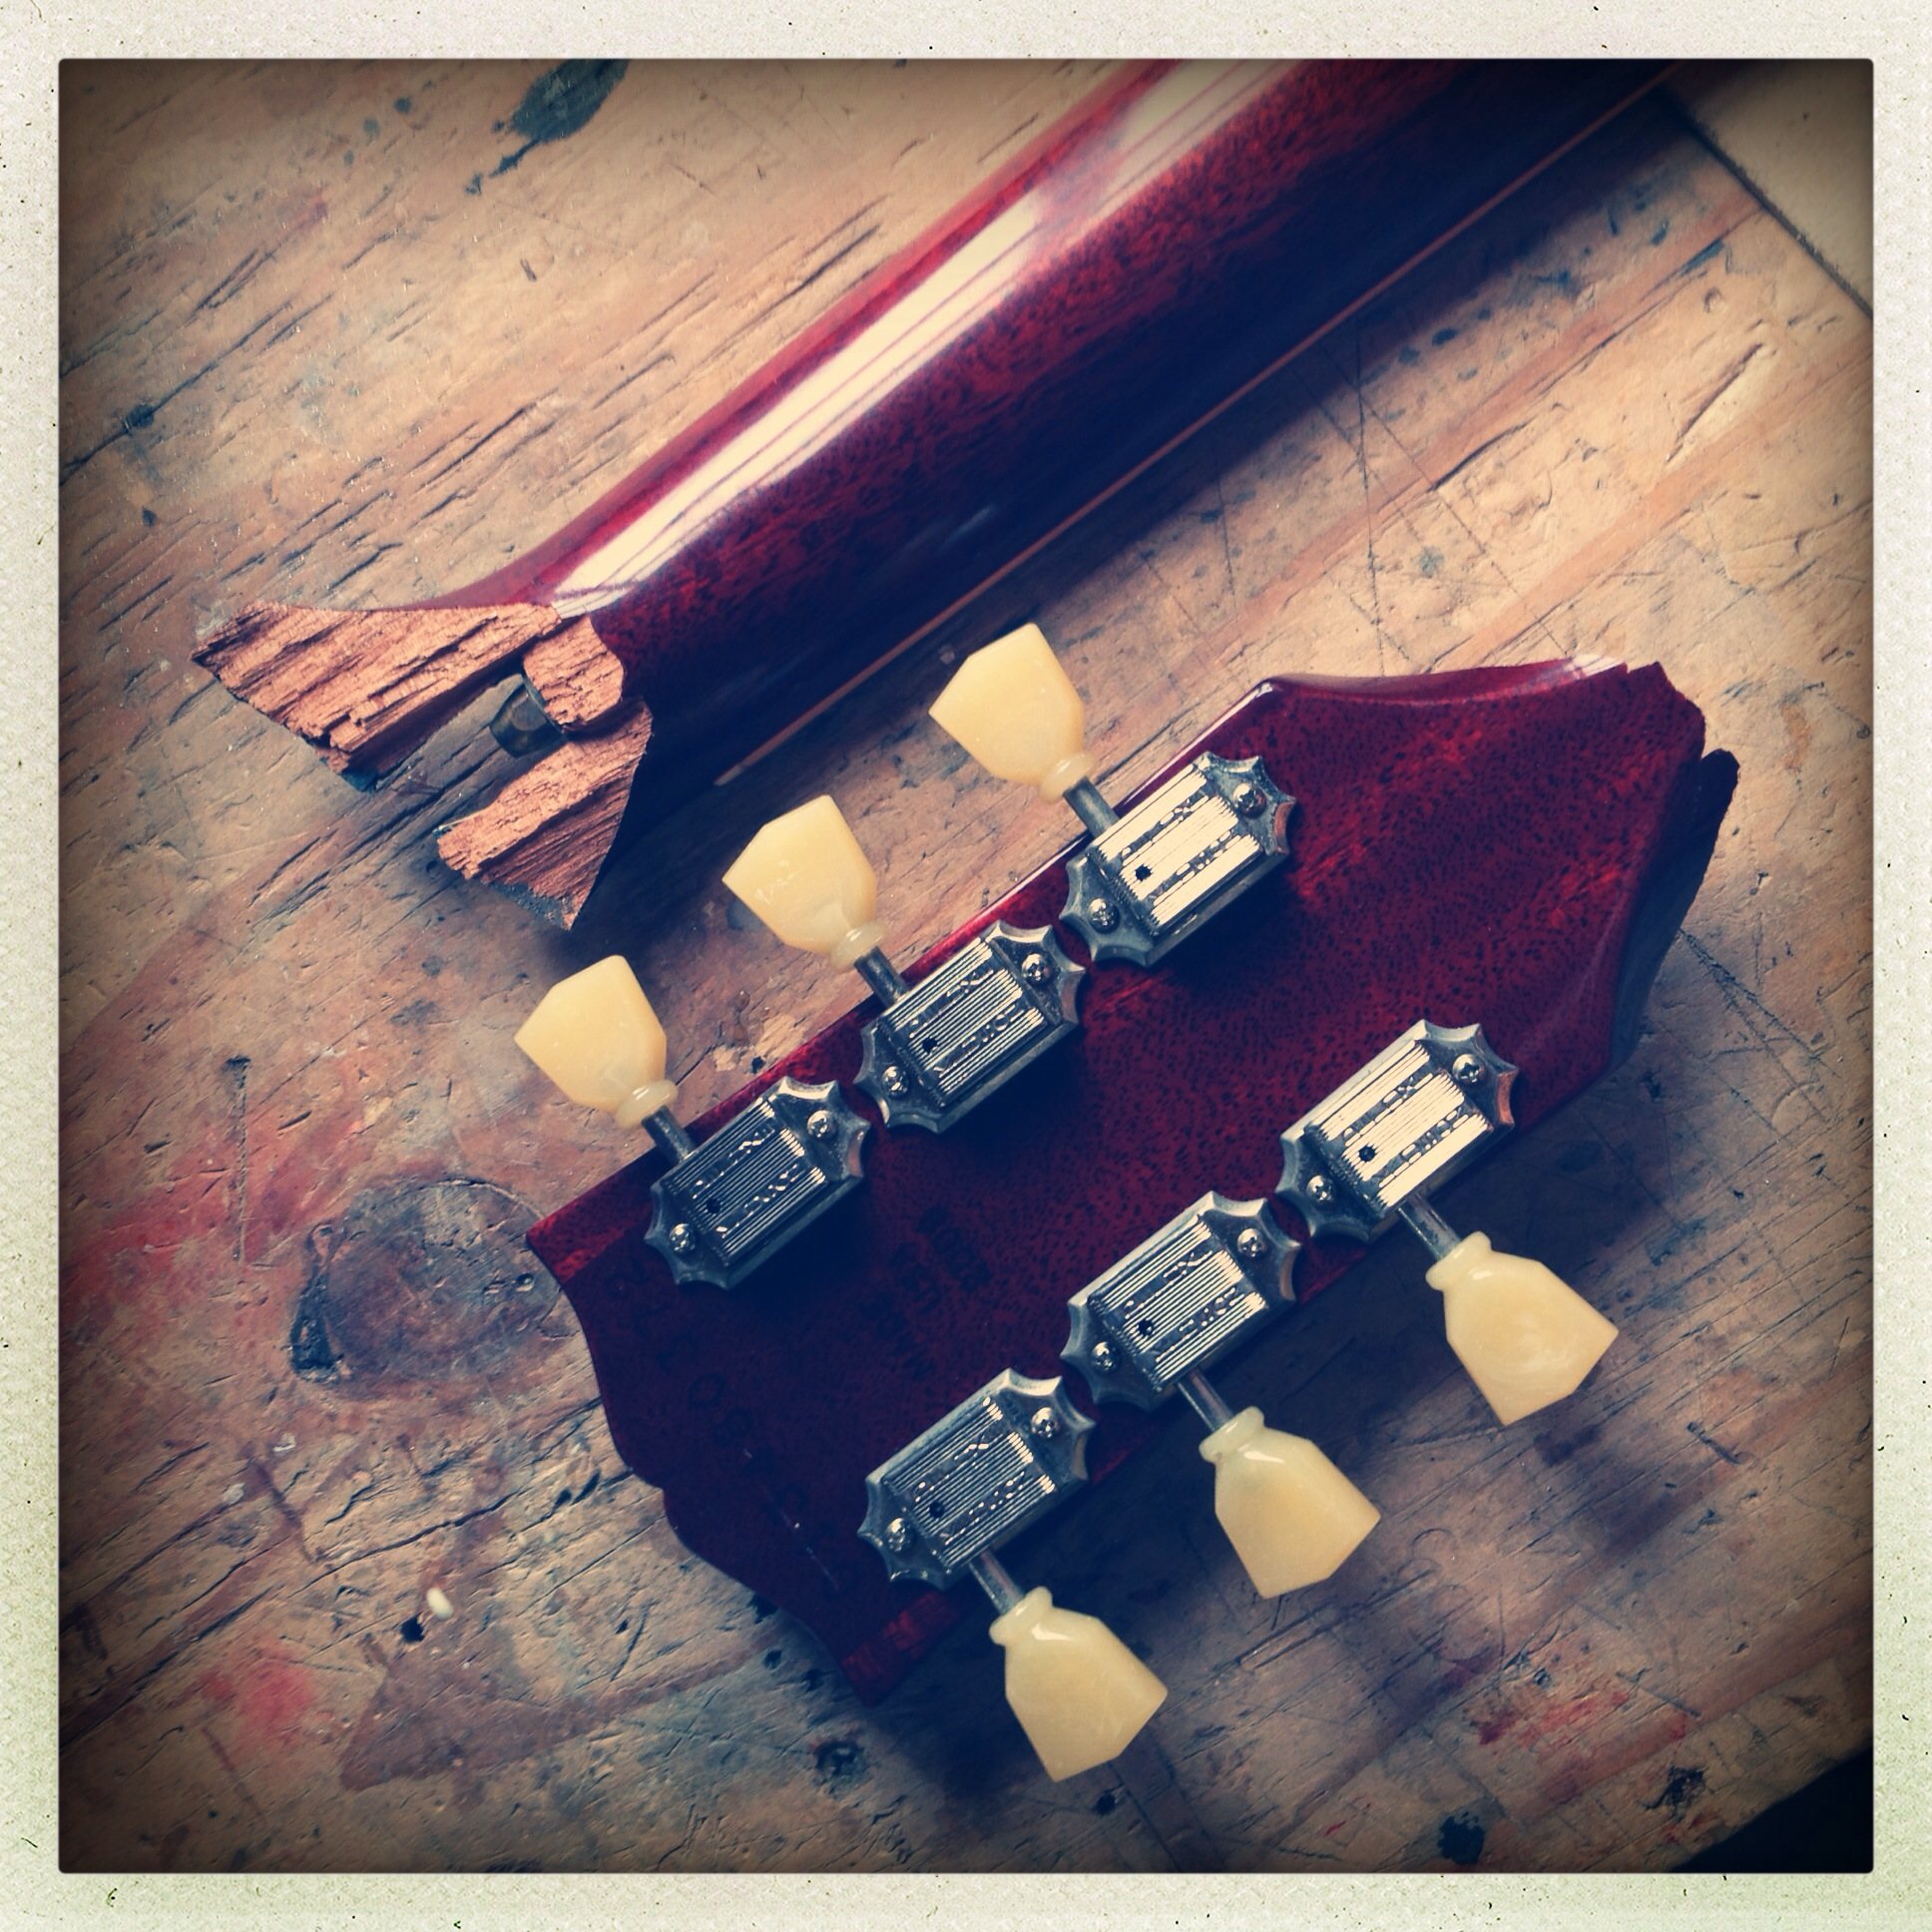 Broken Gibson headstock repair